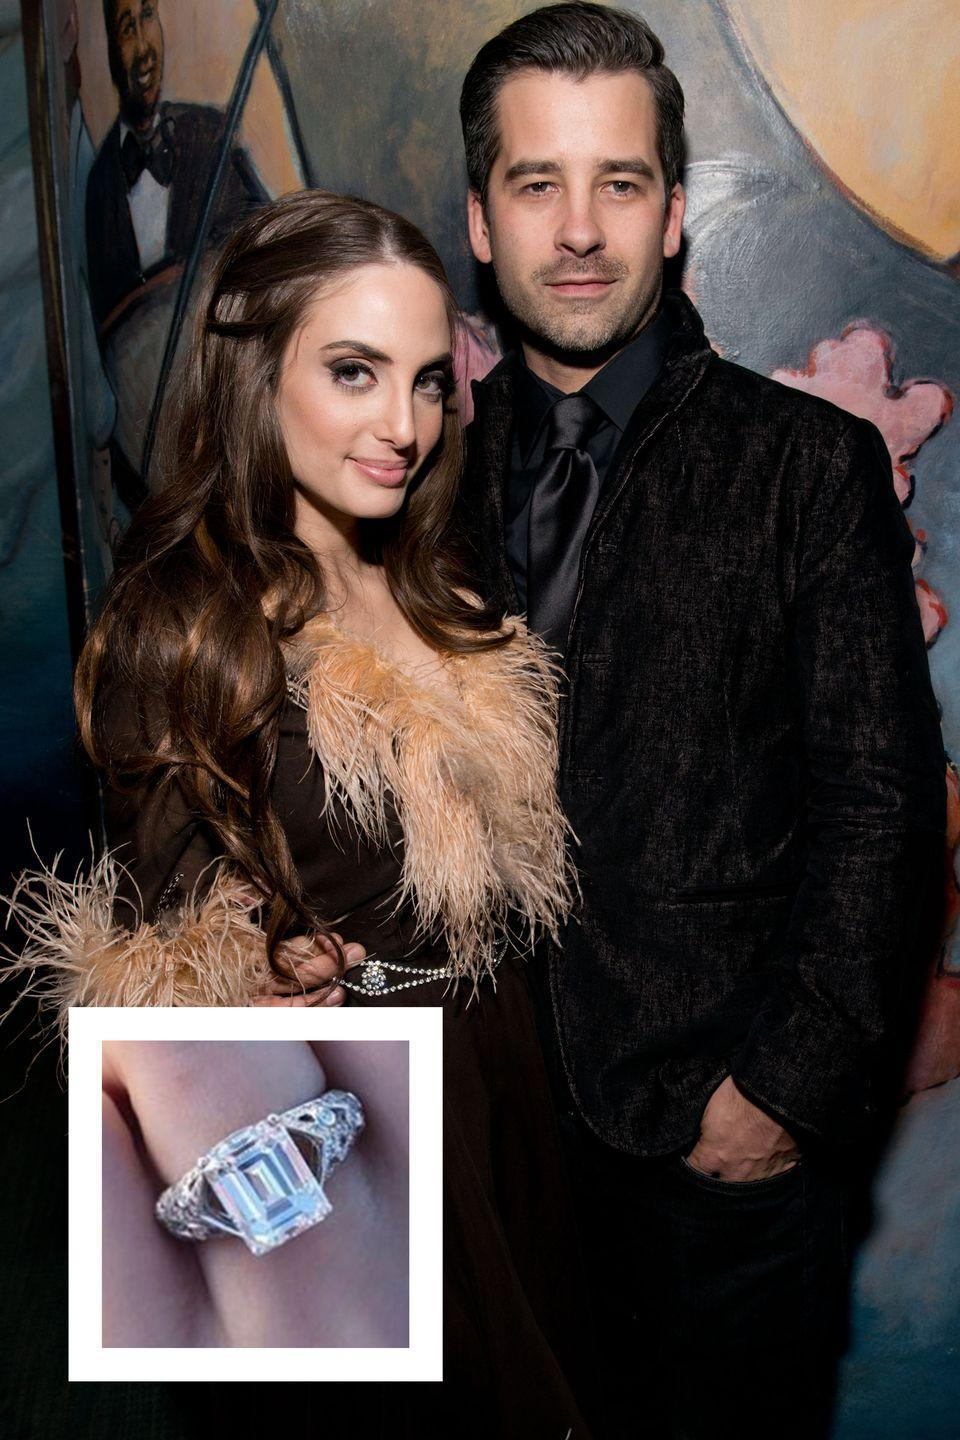 """<p>Joel, the daughter of Billy Joel and Christie Brinkley, and longtime boyfriend Ryan Gleason rang in 2018 with the happy news of their engagement. <a href=""""https://www.townandcountrymag.com/society/a14532125/alexa-ray-joel-engaged/"""" rel=""""nofollow noopener"""" target=""""_blank"""" data-ylk=""""slk:Gleason proposed with a huge emerald-cut diamond ring"""" class=""""link rapid-noclick-resp"""">Gleason proposed with a huge emerald-cut diamond ring</a> set on a band with diamond detailing, which was designed by Carelle. </p>"""